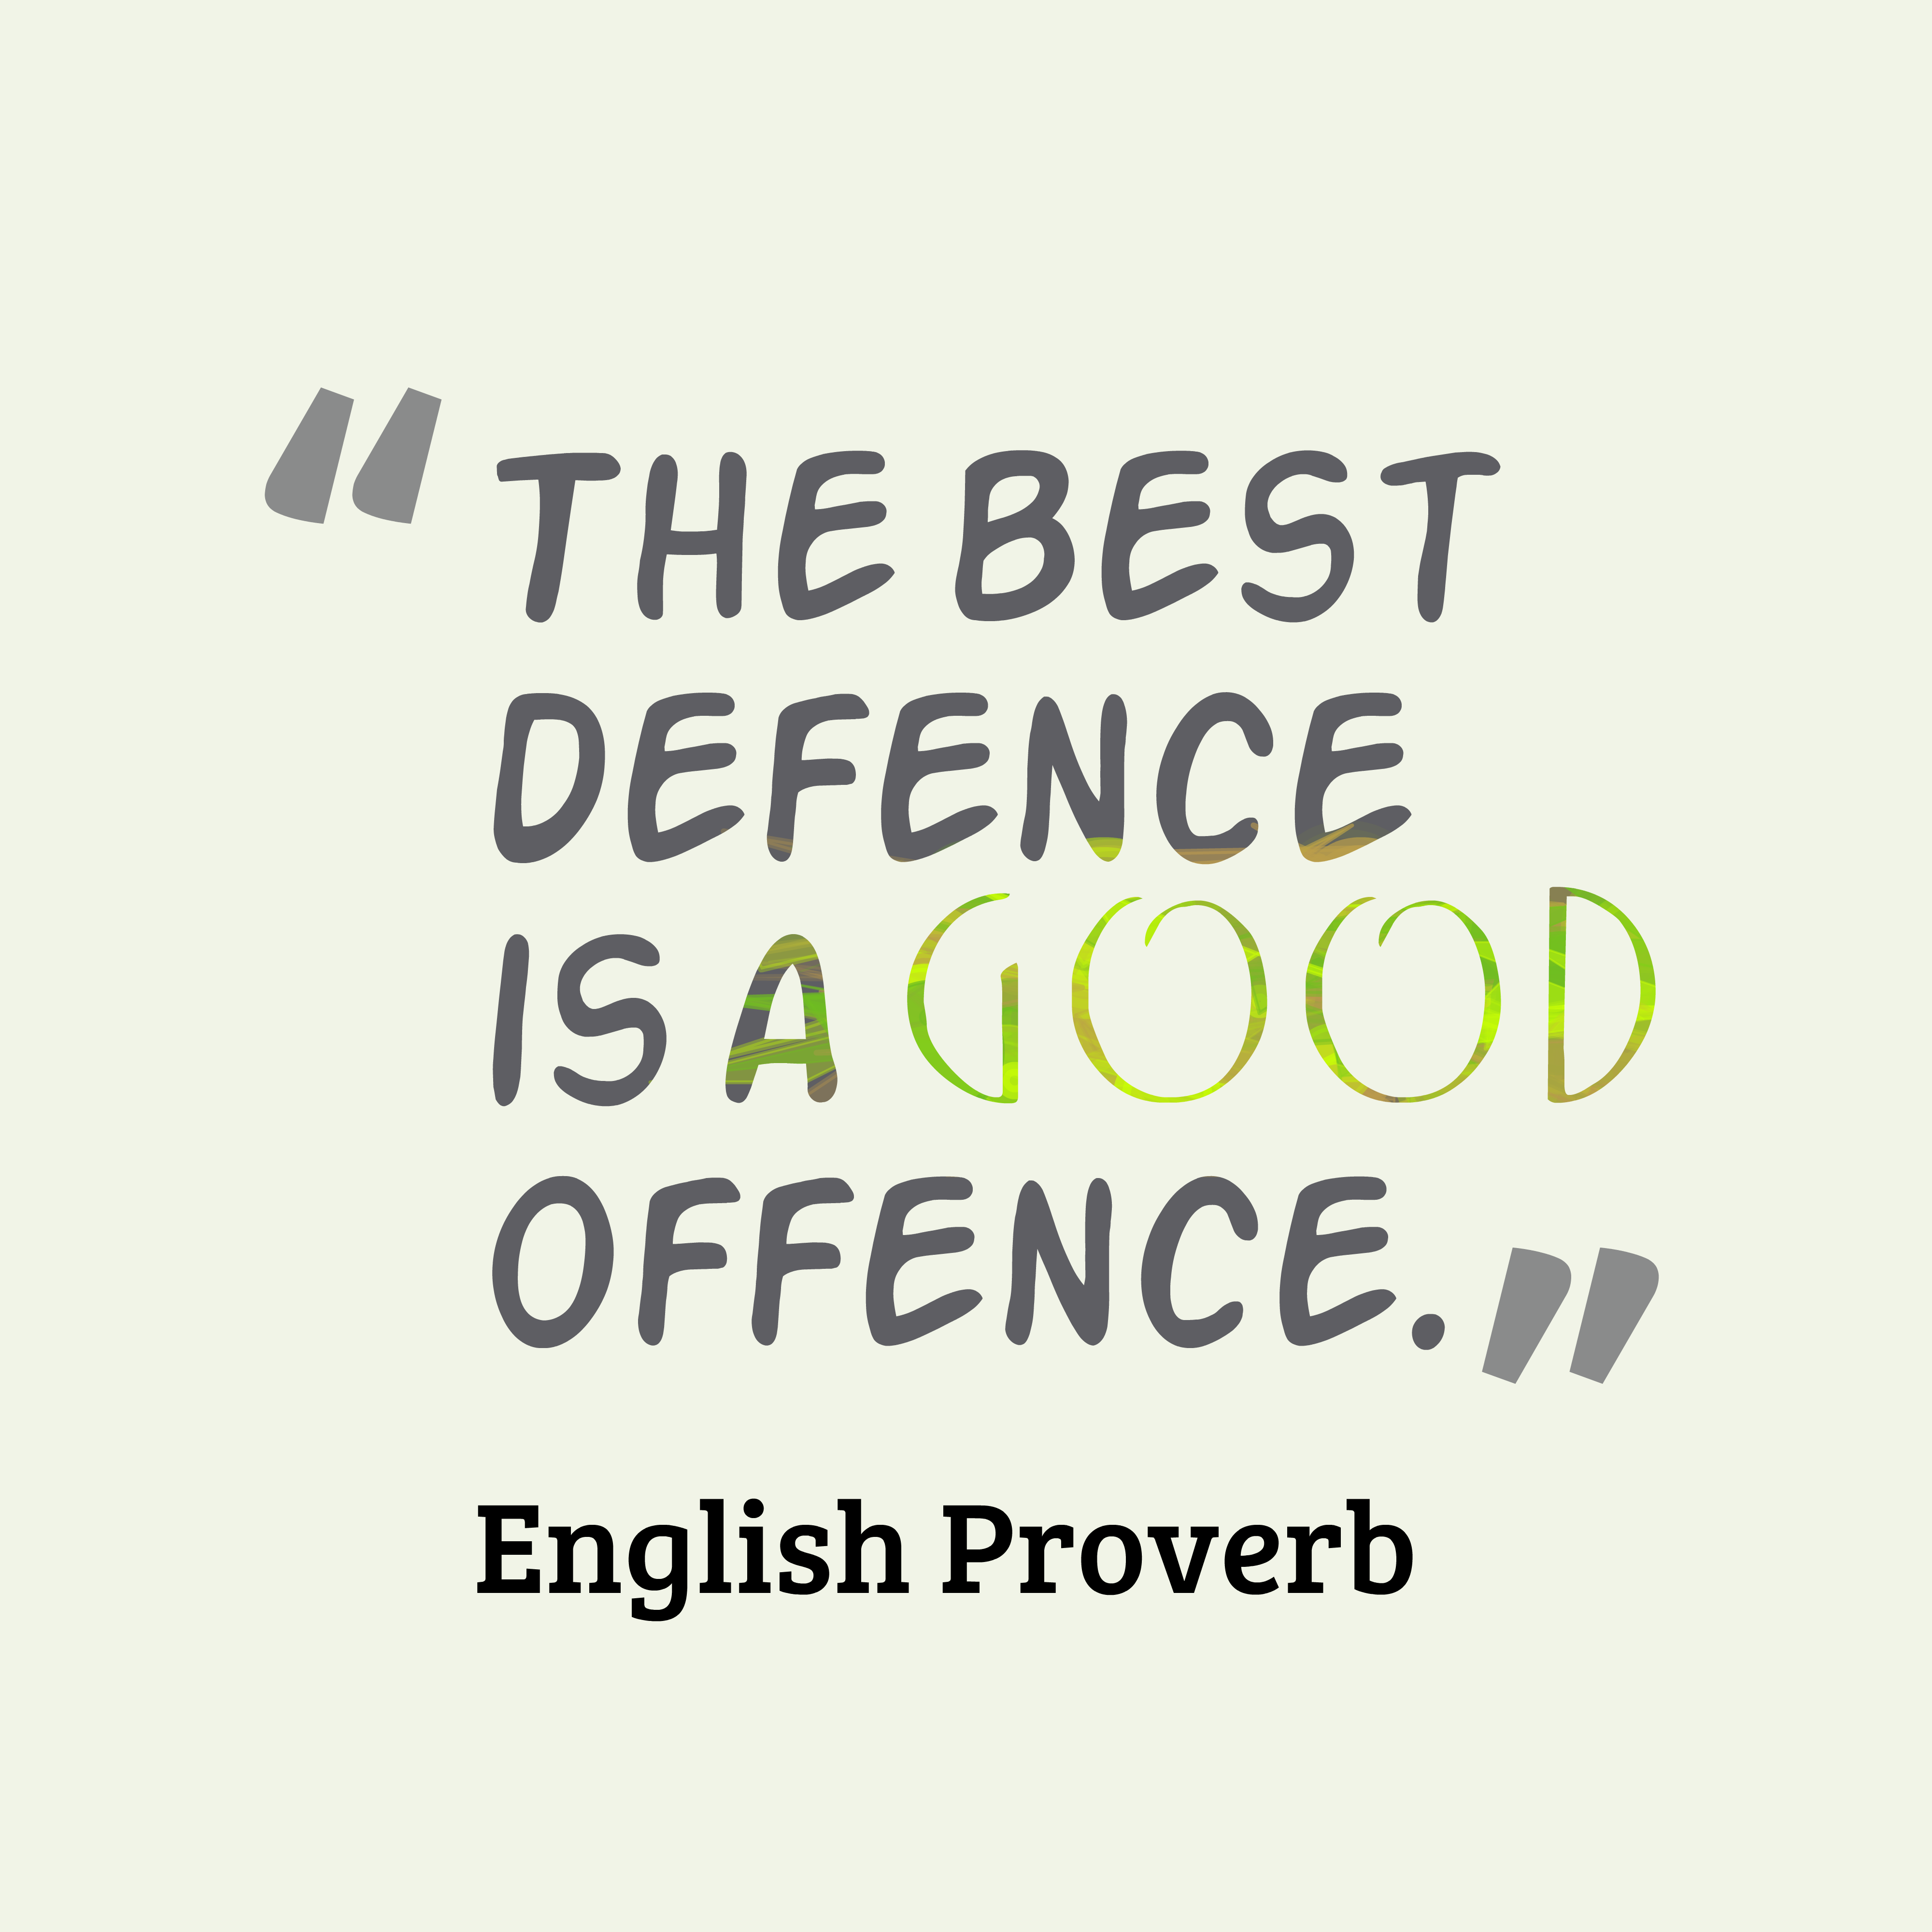 Download Favorite Qoute: Download High Resolution Quotes Picture Maker From English